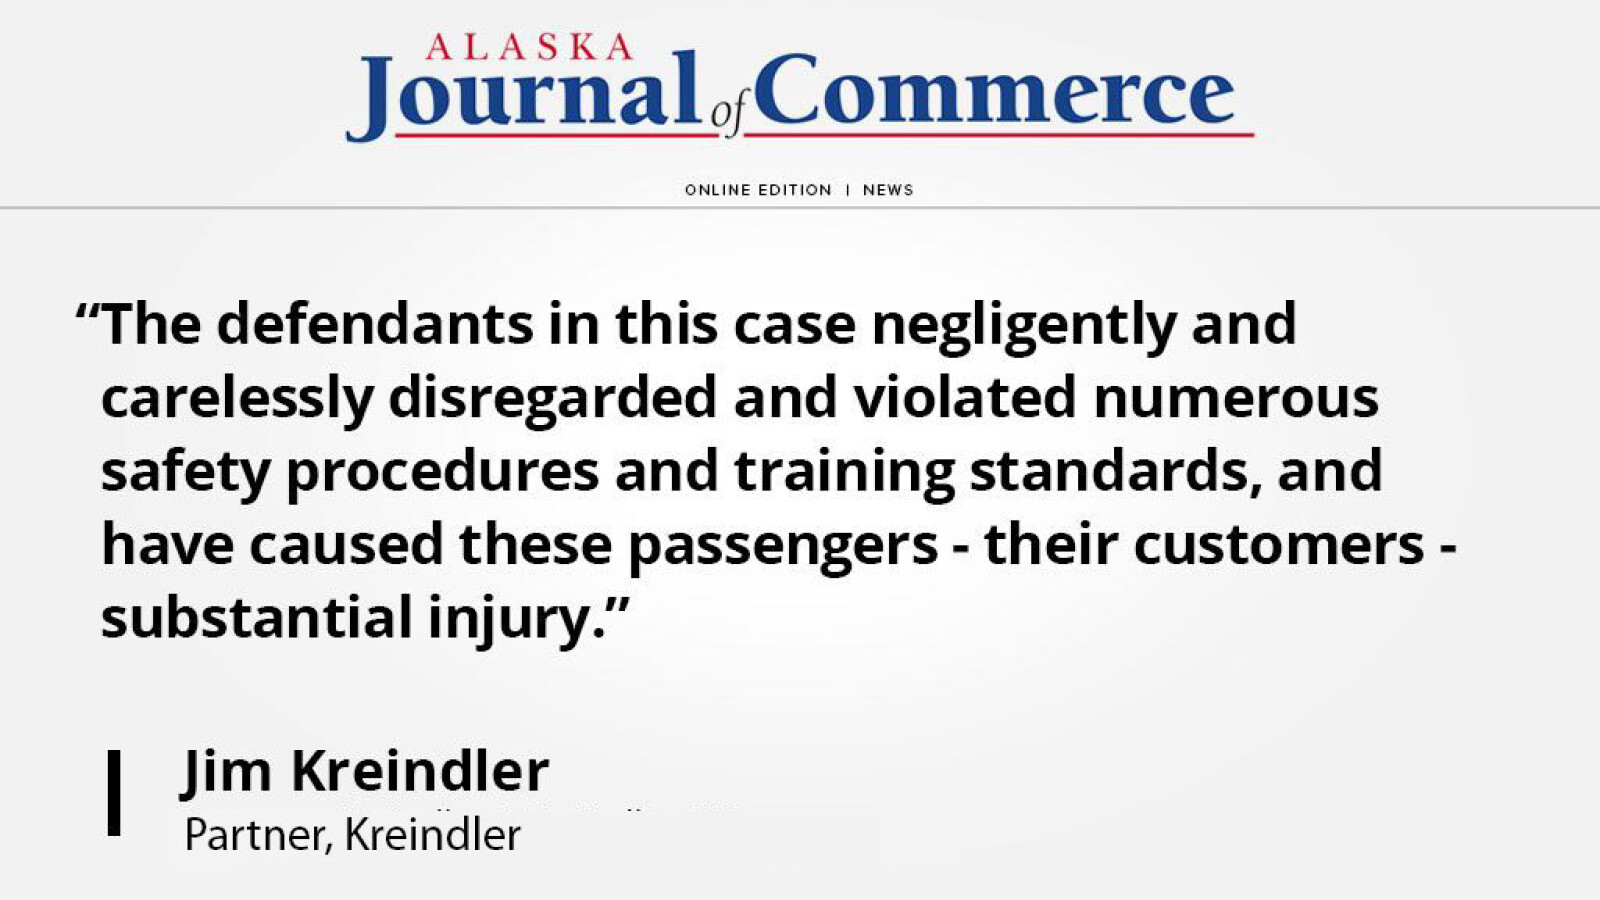 Partner Jim Kreindler discusses liability issues in Alaska Airlines Flight's loss of cabin pressure